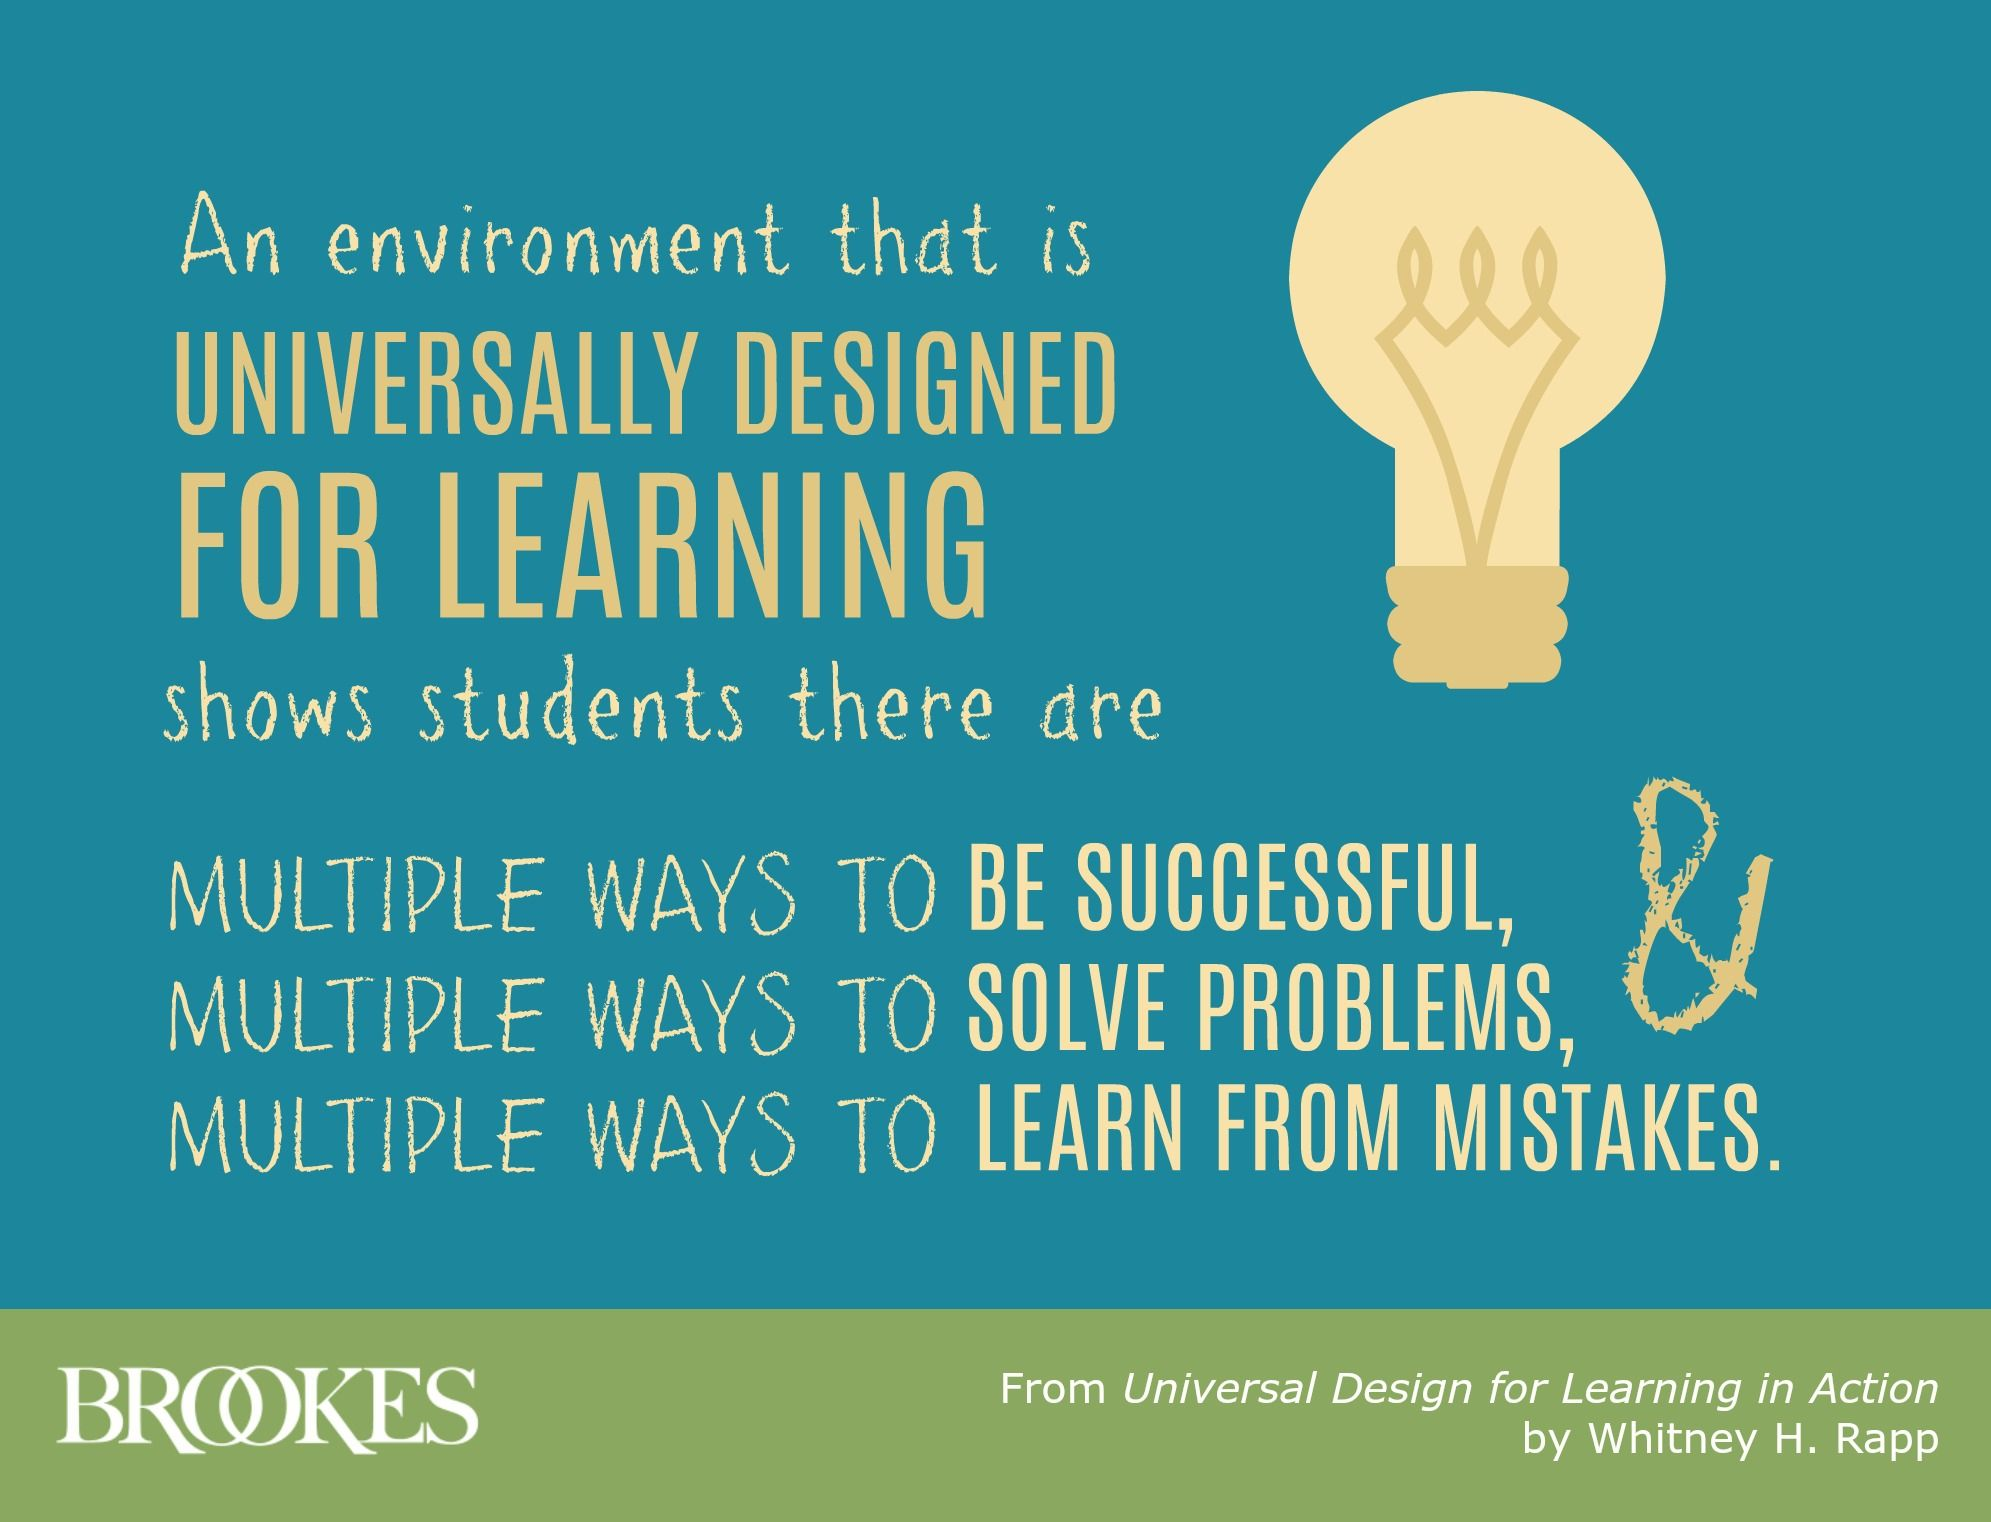 Udl Quotes Environment Universally Designed